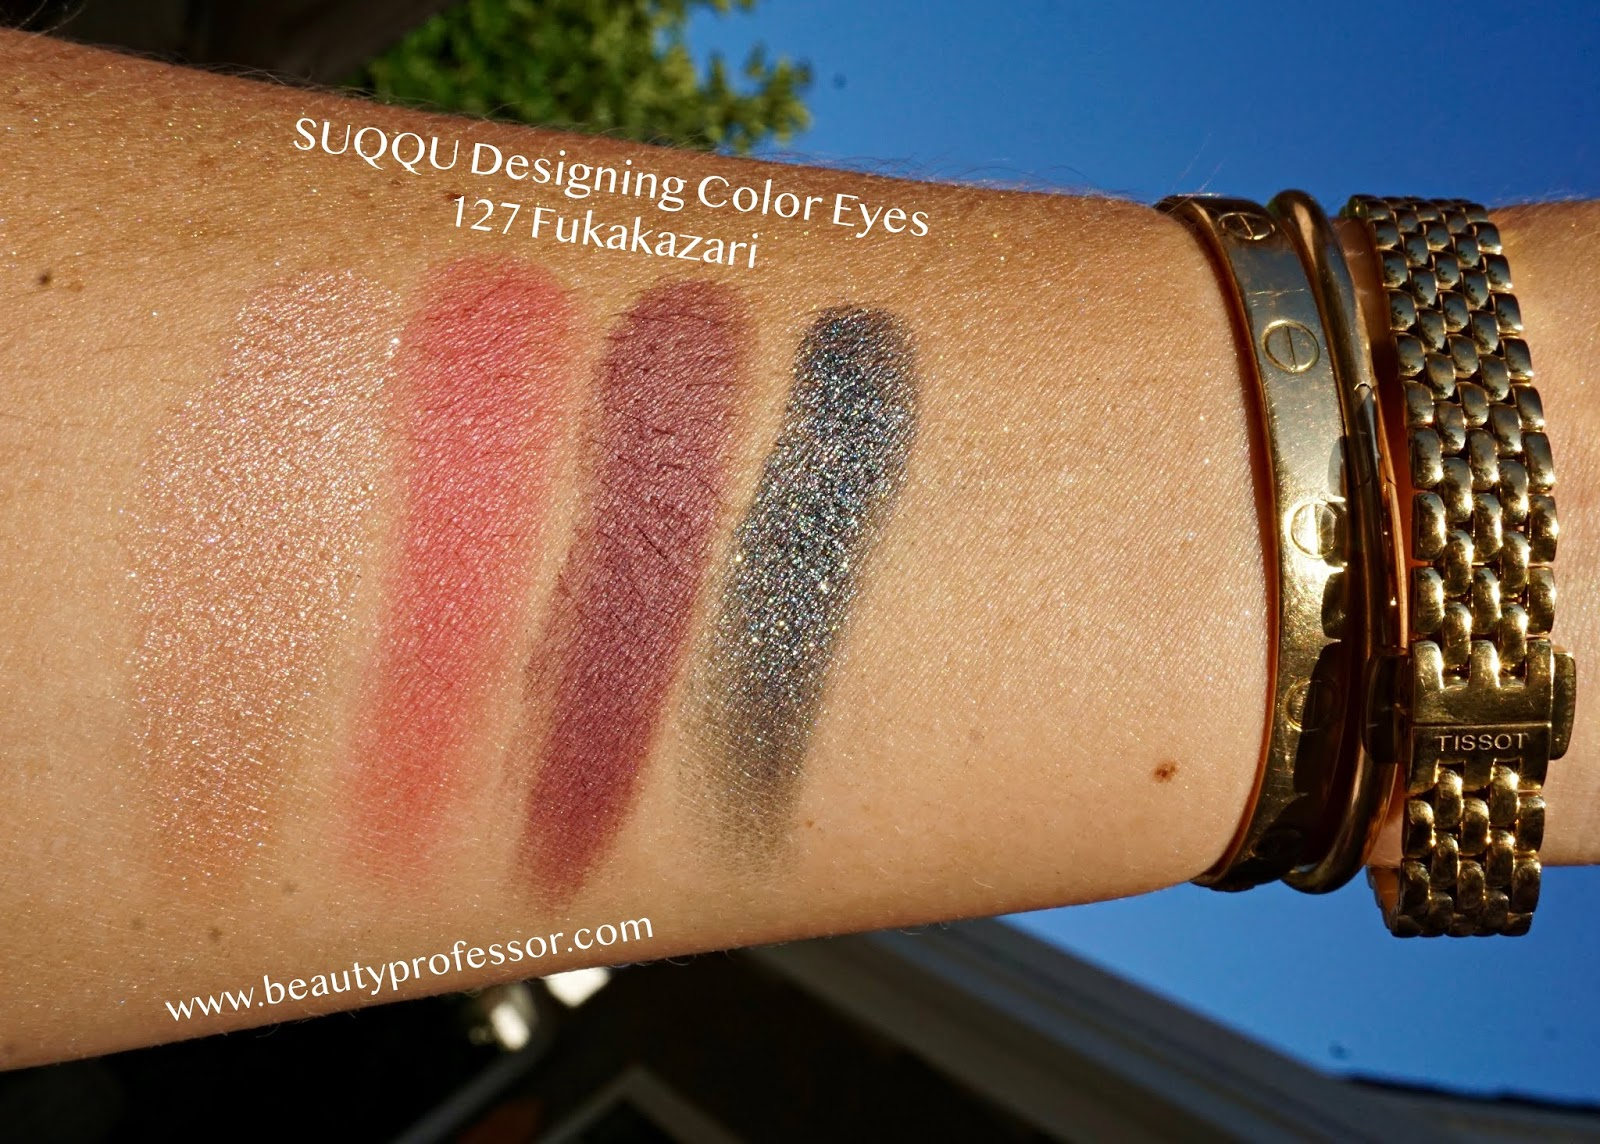 suqqu holiday collection 2019 swatches